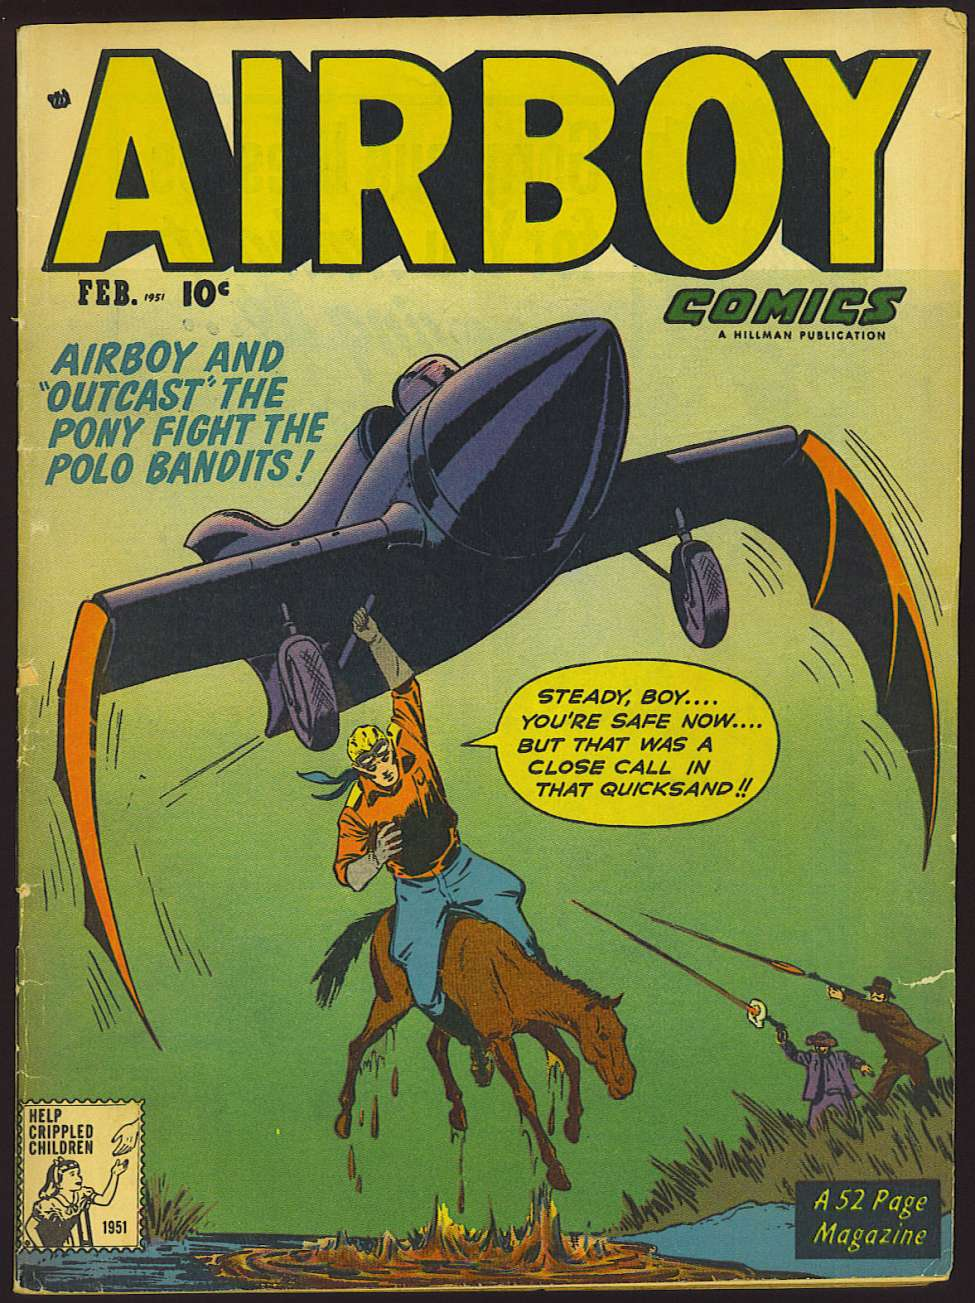 Comic Book Cover For Airboy Comics v8 1 [84]